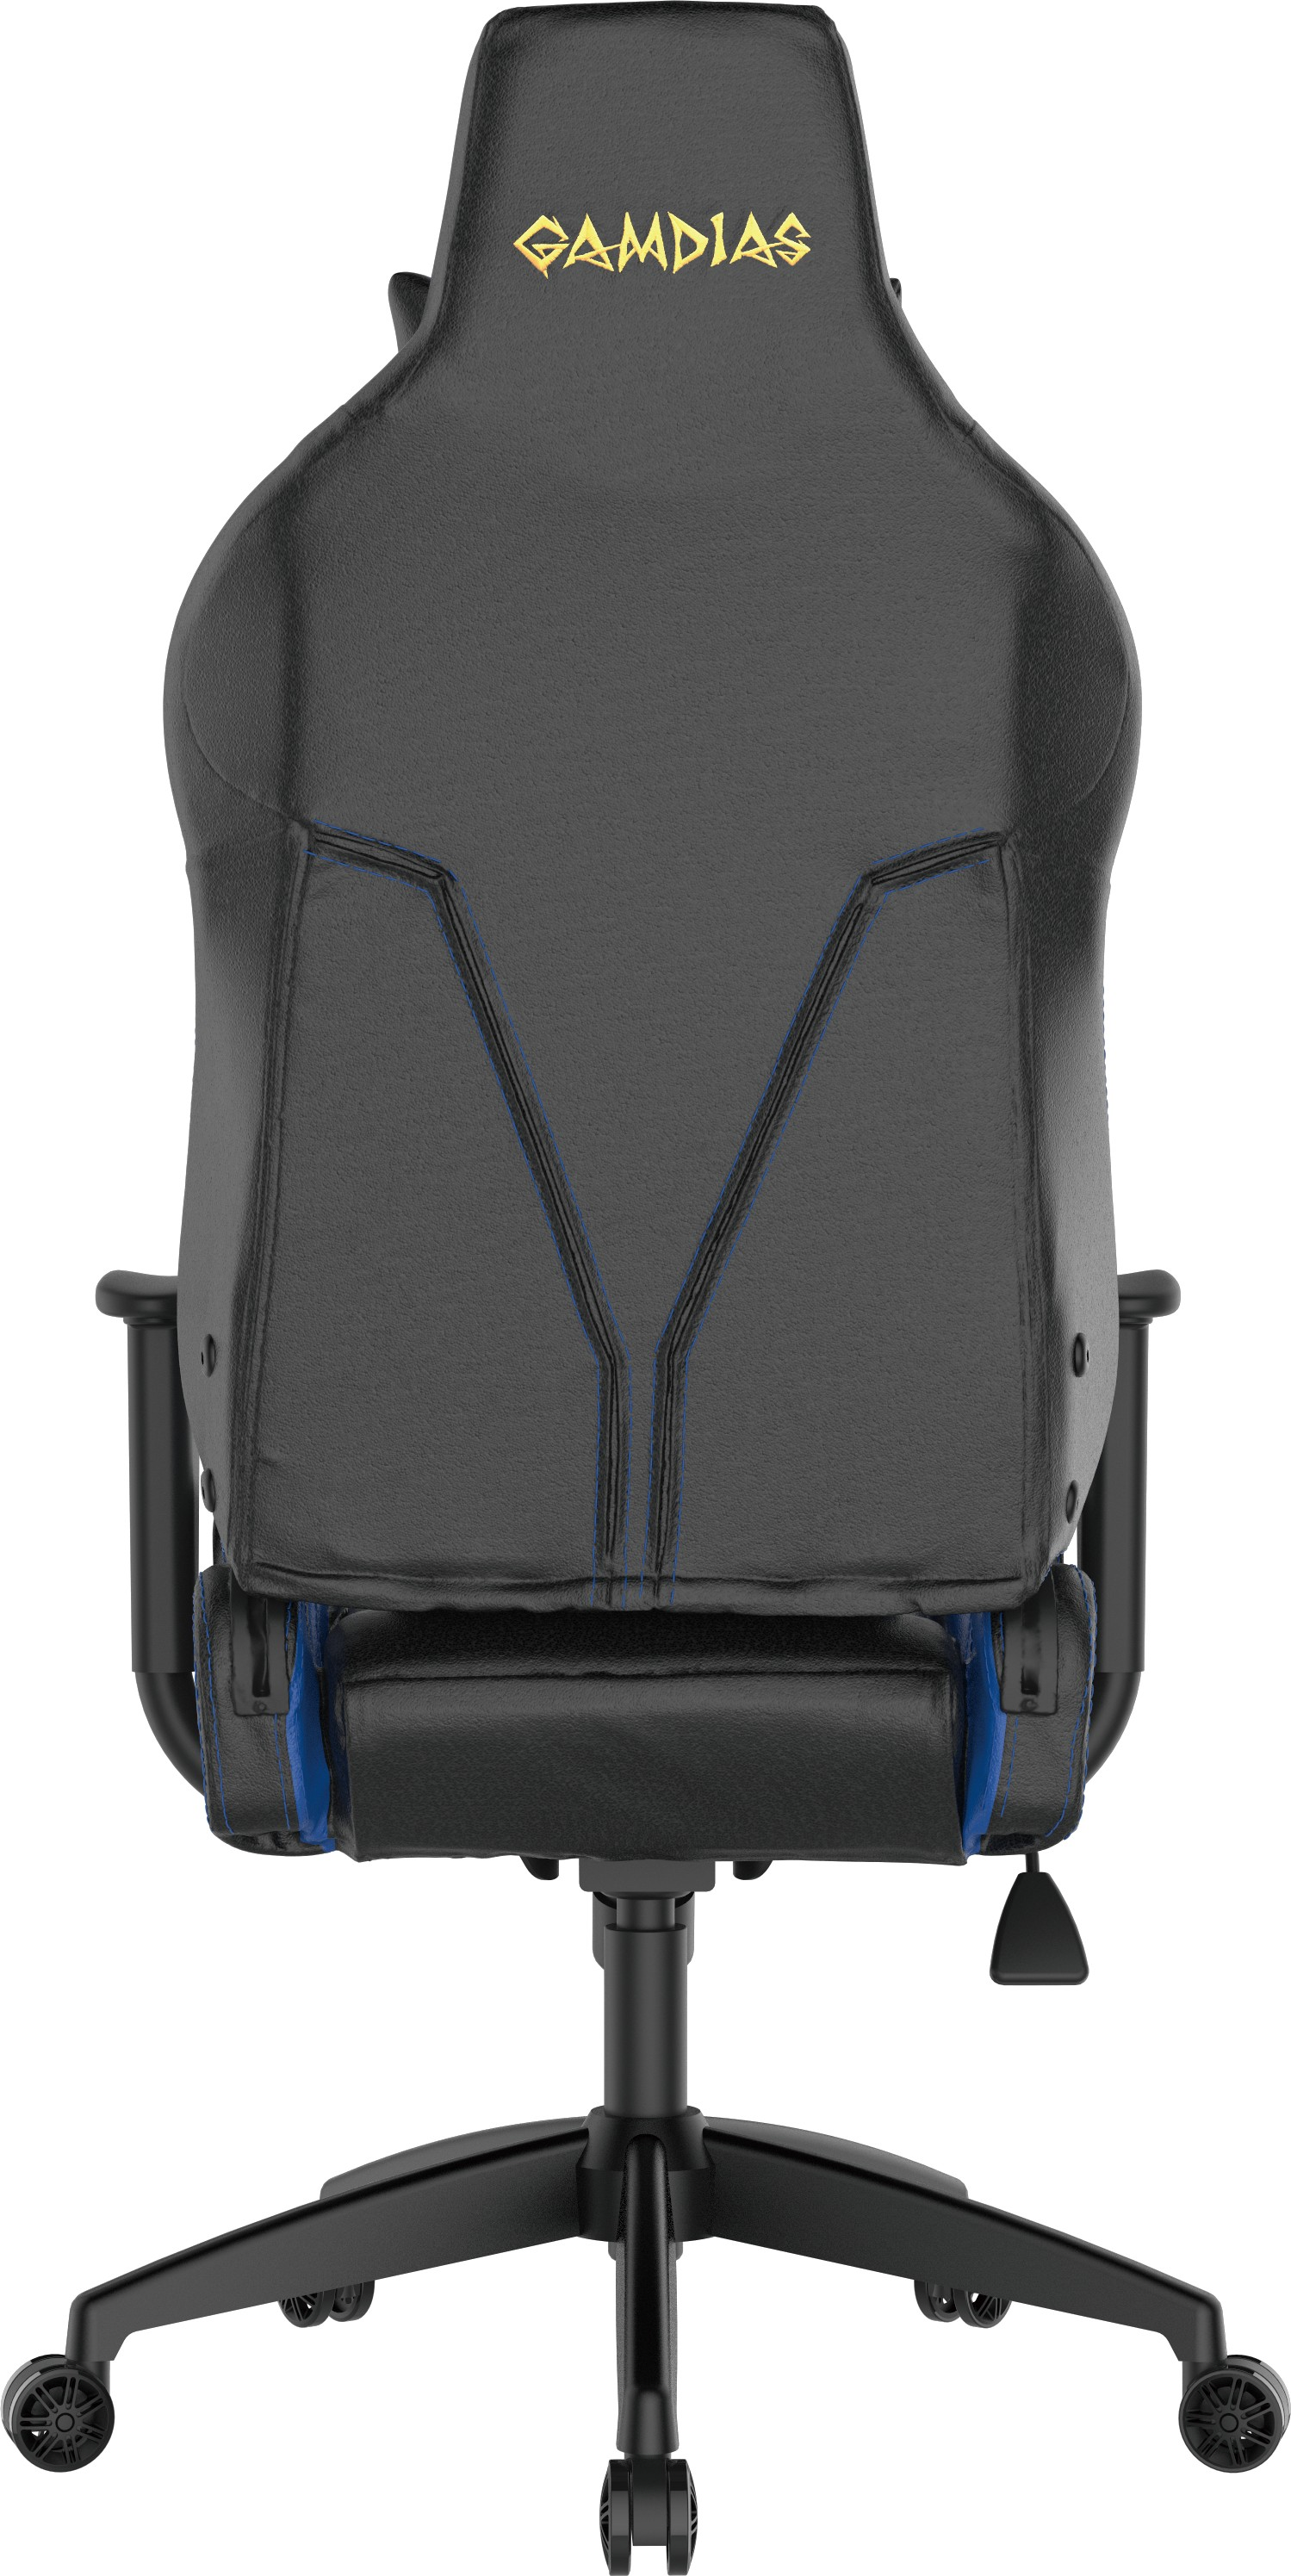 GAMING CHAIR GAMDIAS Achilles E2-L - (black/blue)